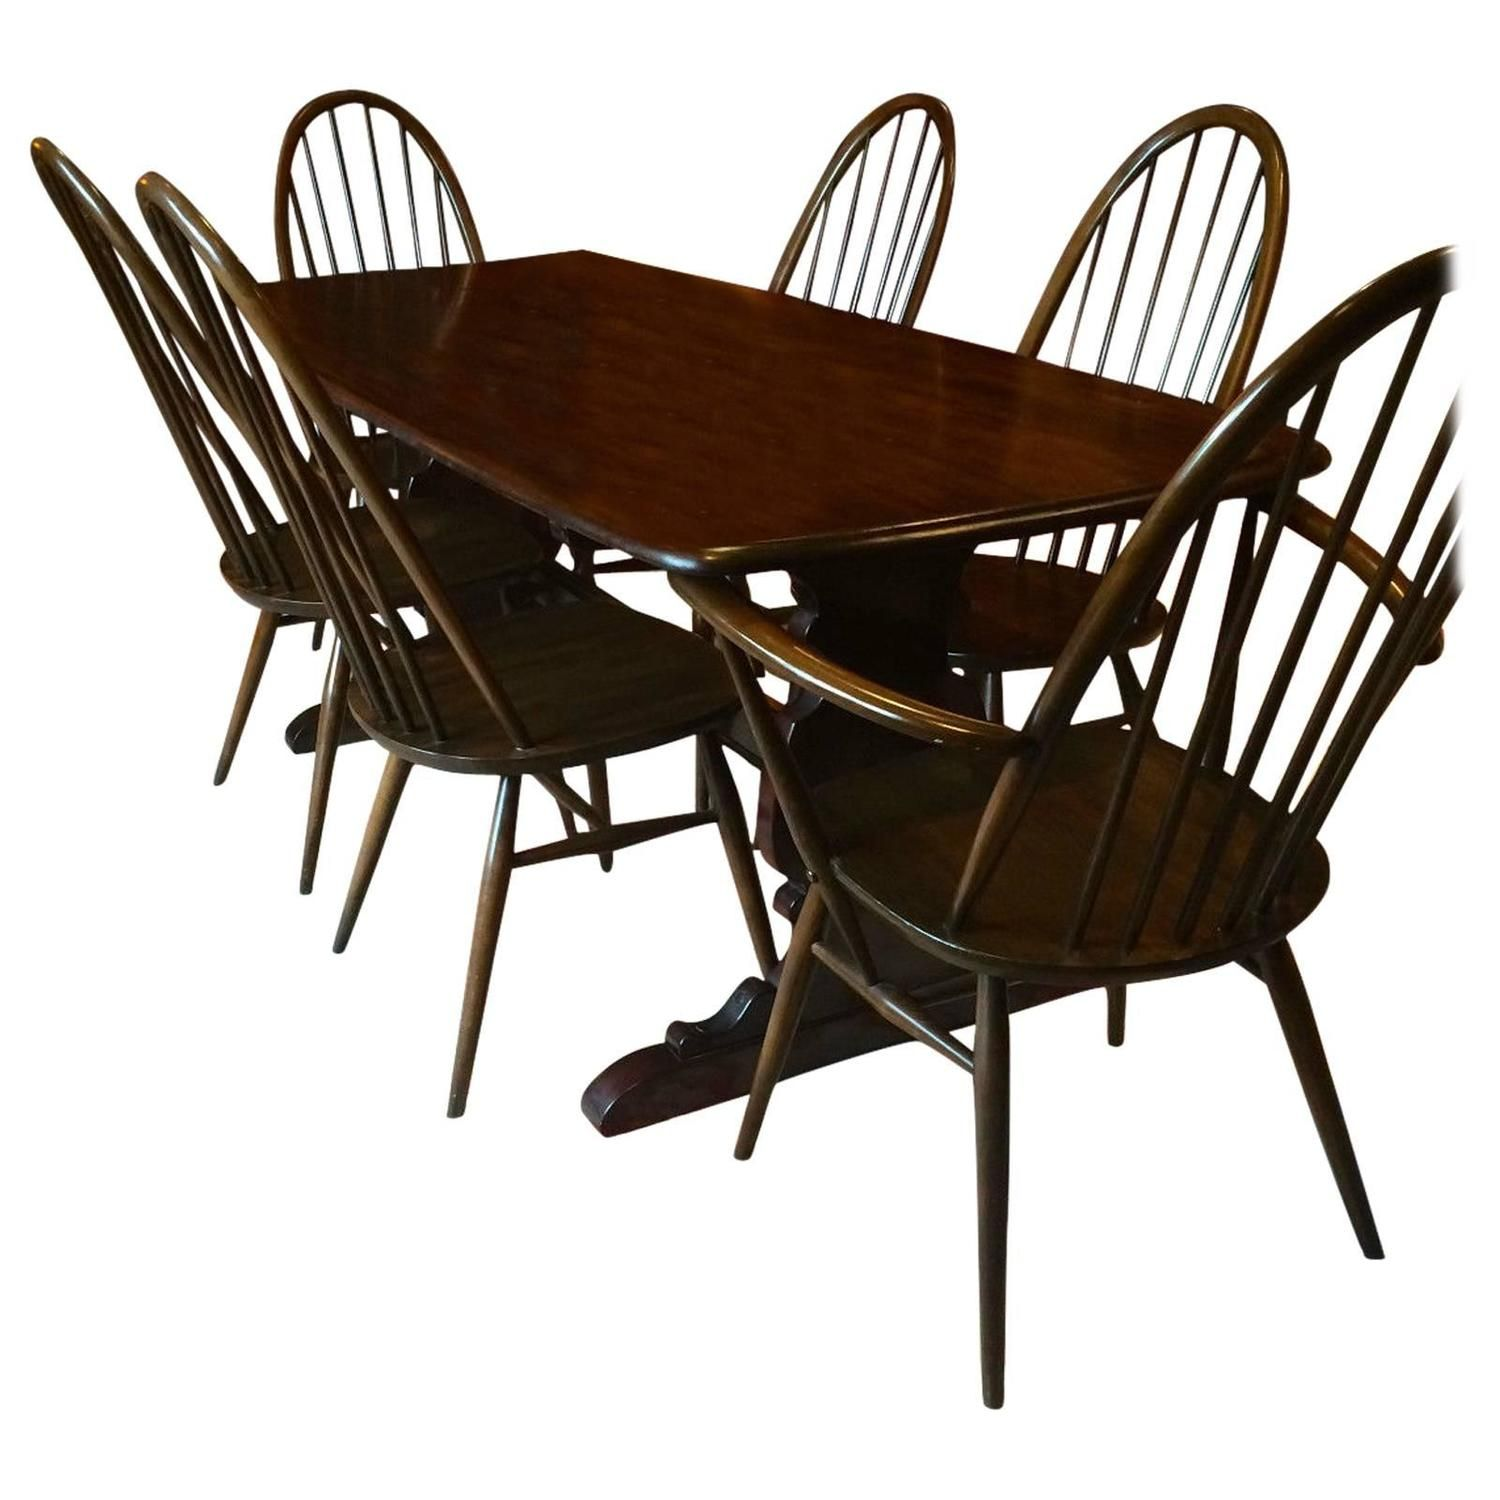 Vintage Ercol Dining Table With Six Chairs Solid Elm Quaker Design